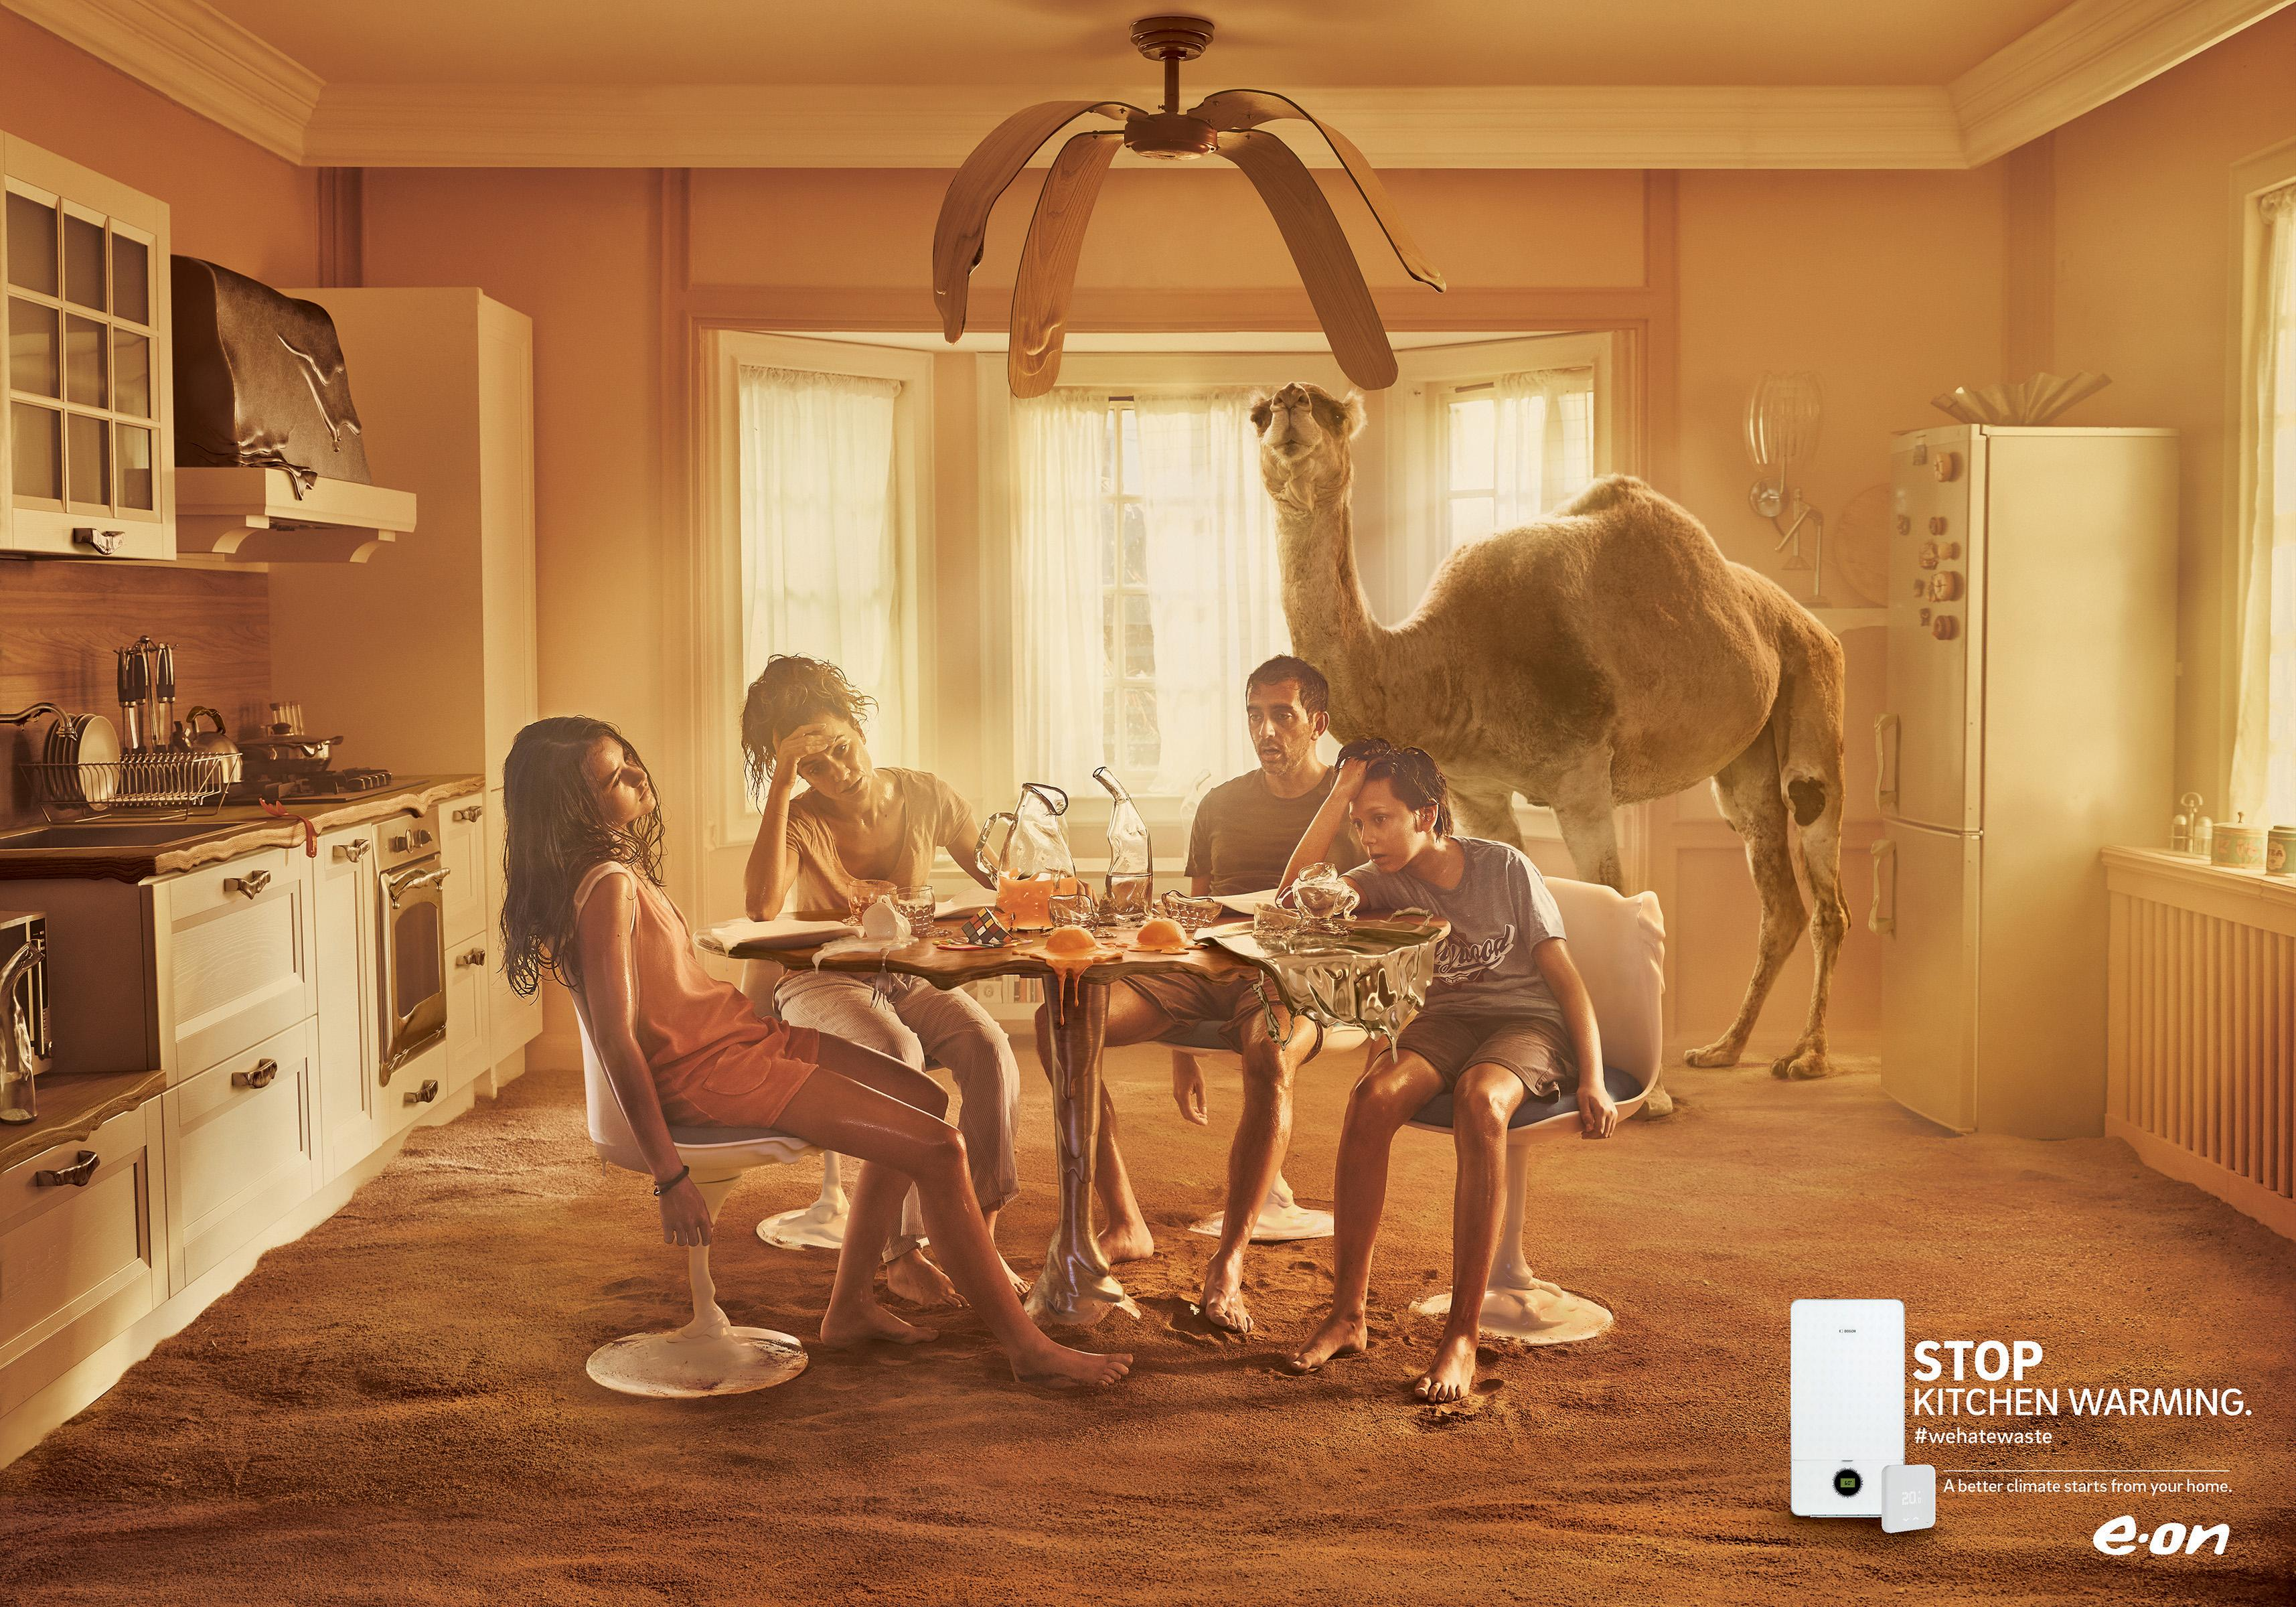 E.ON Print Ad - E.ON ClimaSmart – Kitchen